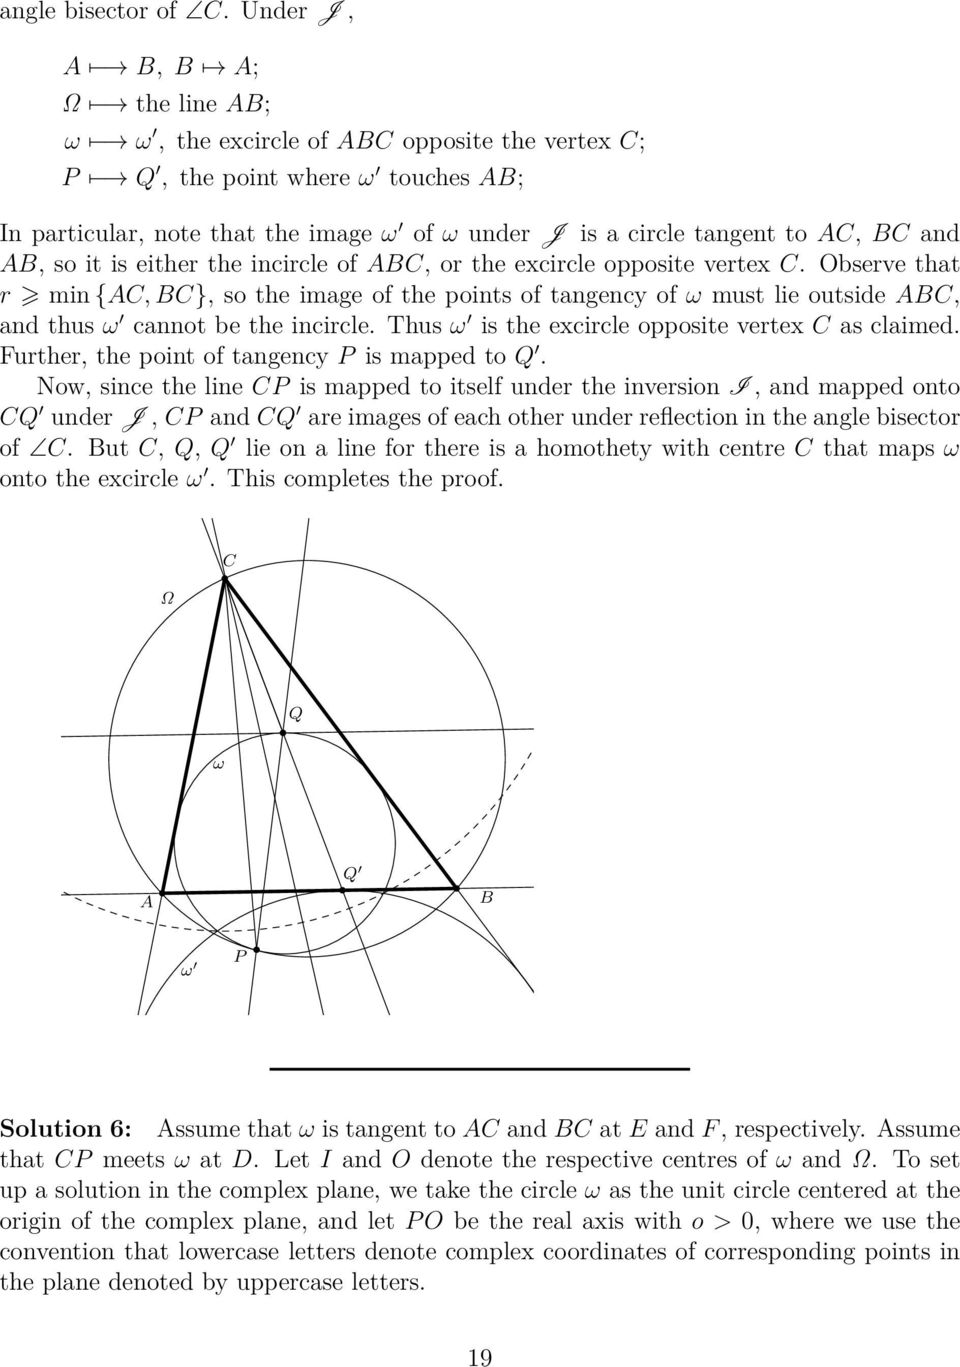 and AB, so it is either the incircle of ABC, or the excircle opposite vertex C.